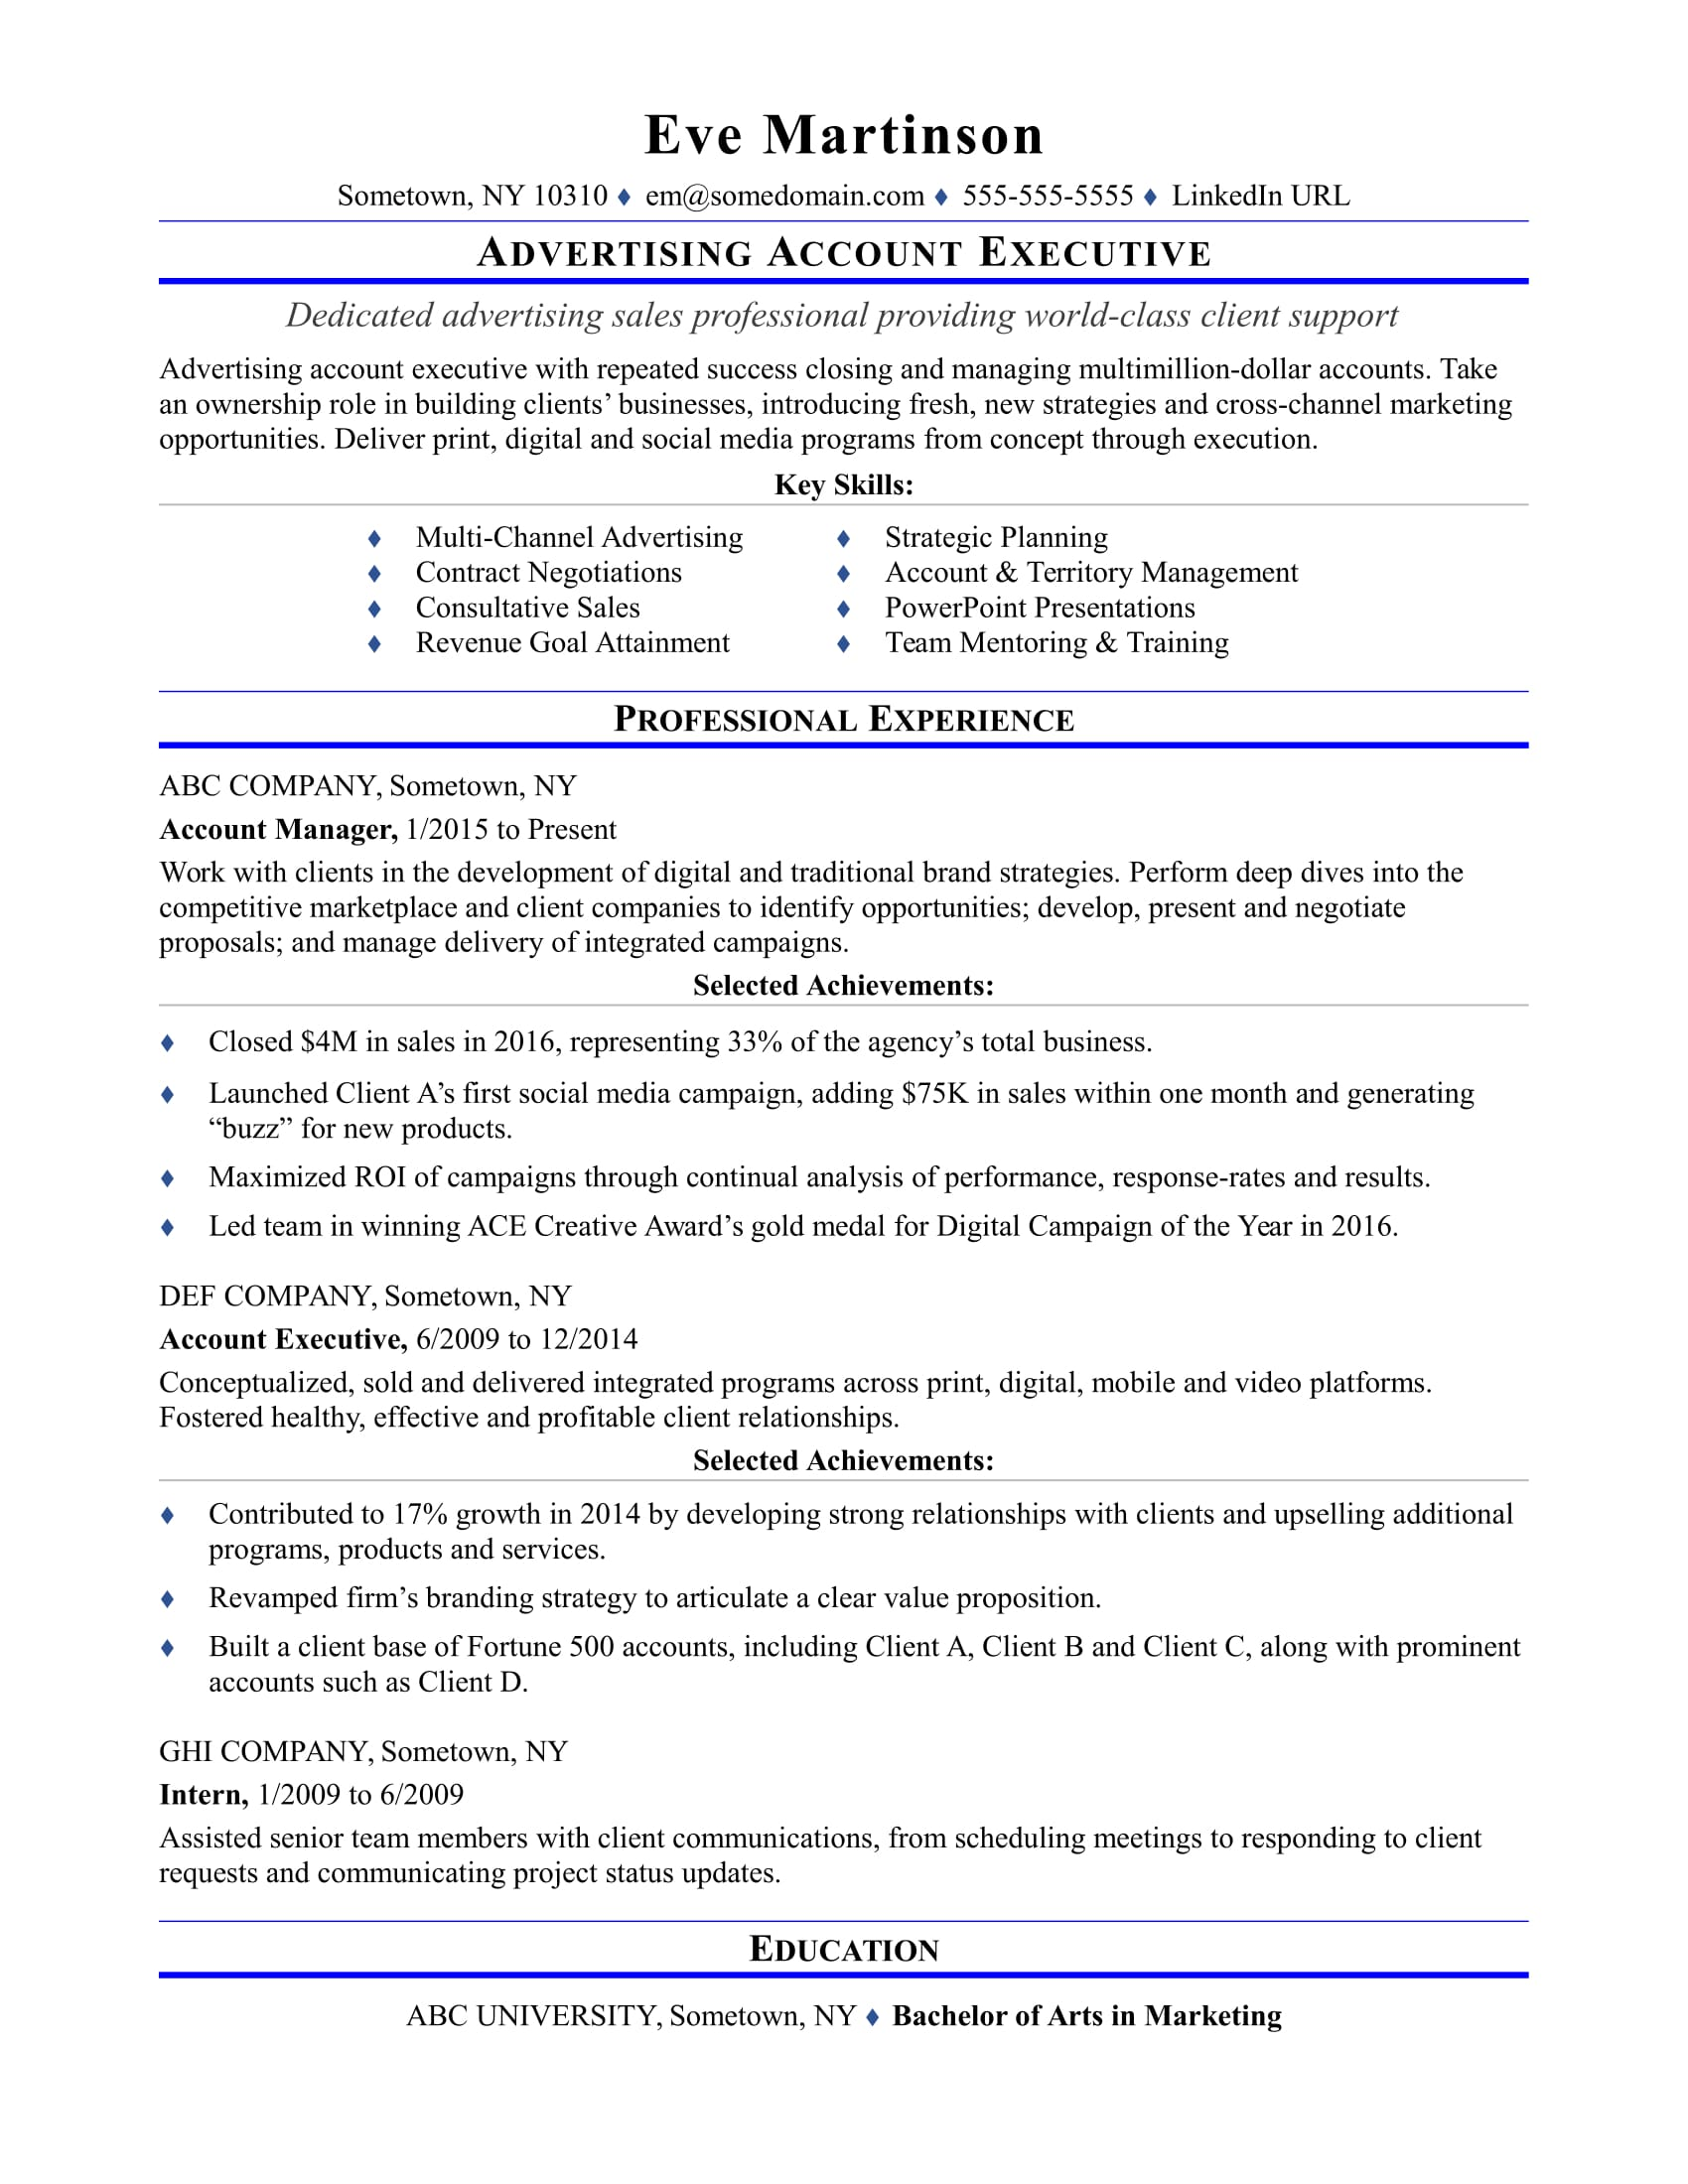 Advertising Account Executive Resume Pleasing Sample Resume For An Advertising Account Executive  Monster